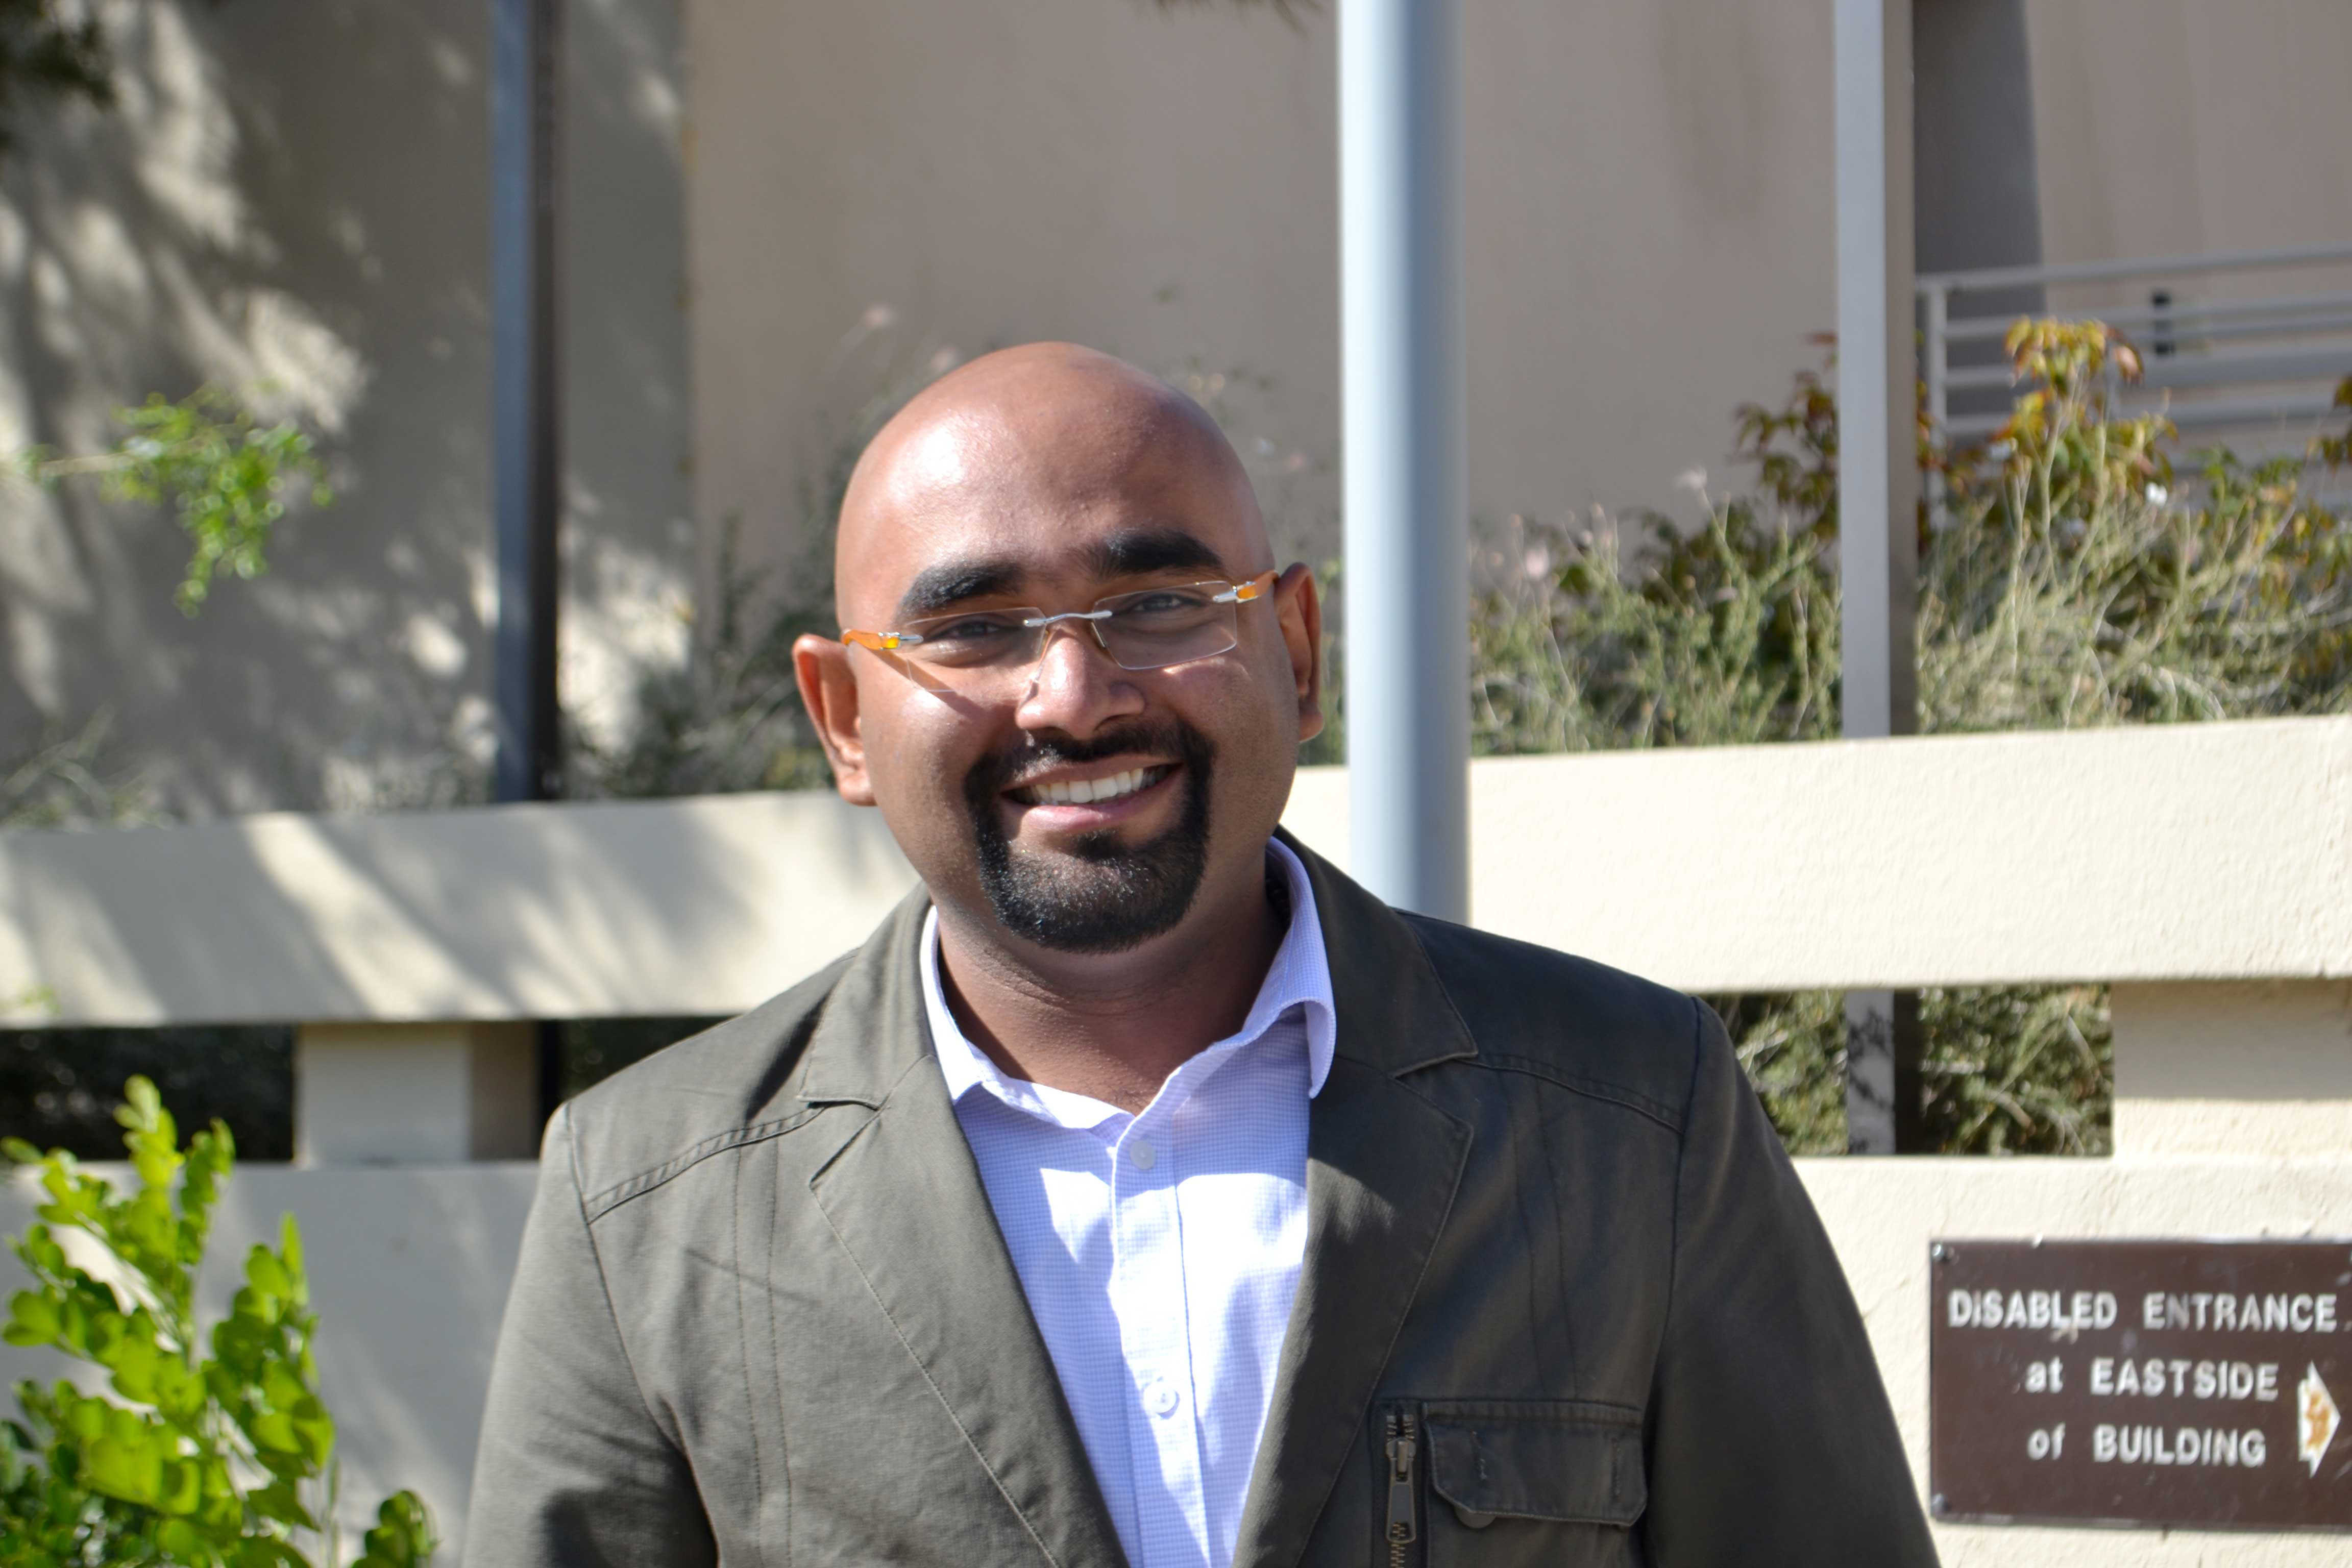 Graduate student in computer science, Nakul Karle, was born and raised in Mumbai, India.